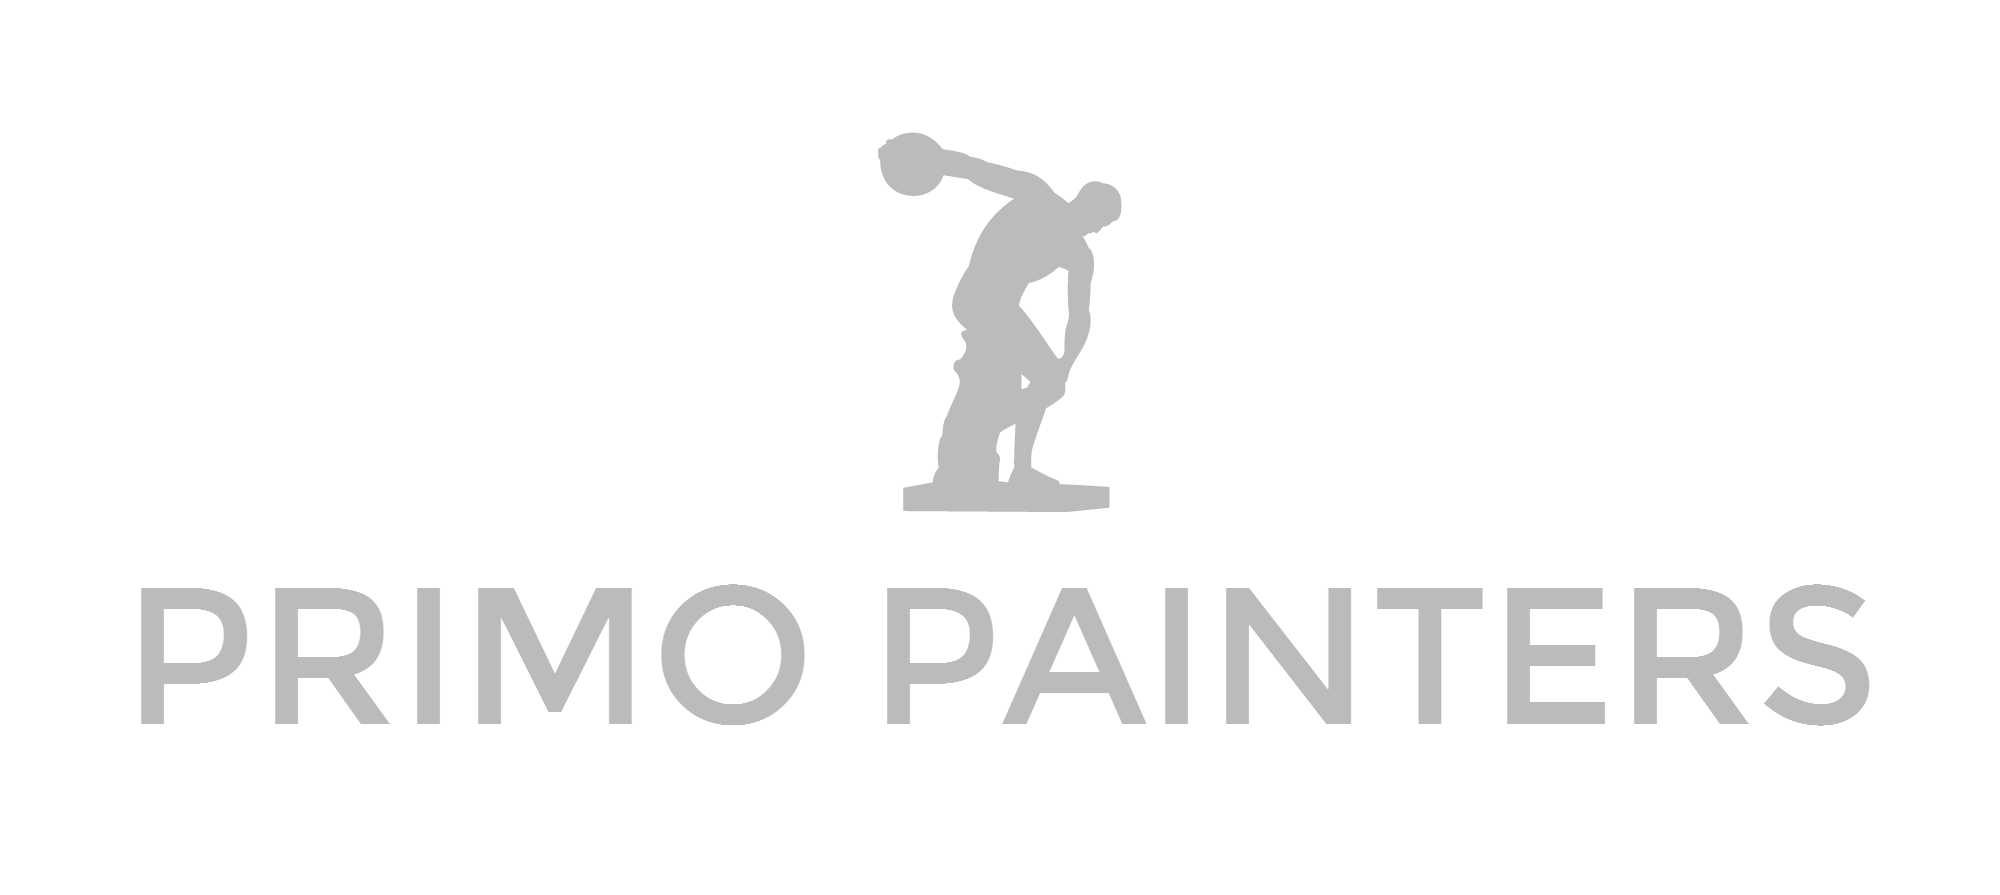 PRIMO PAINTERS-logo_1.fw.png